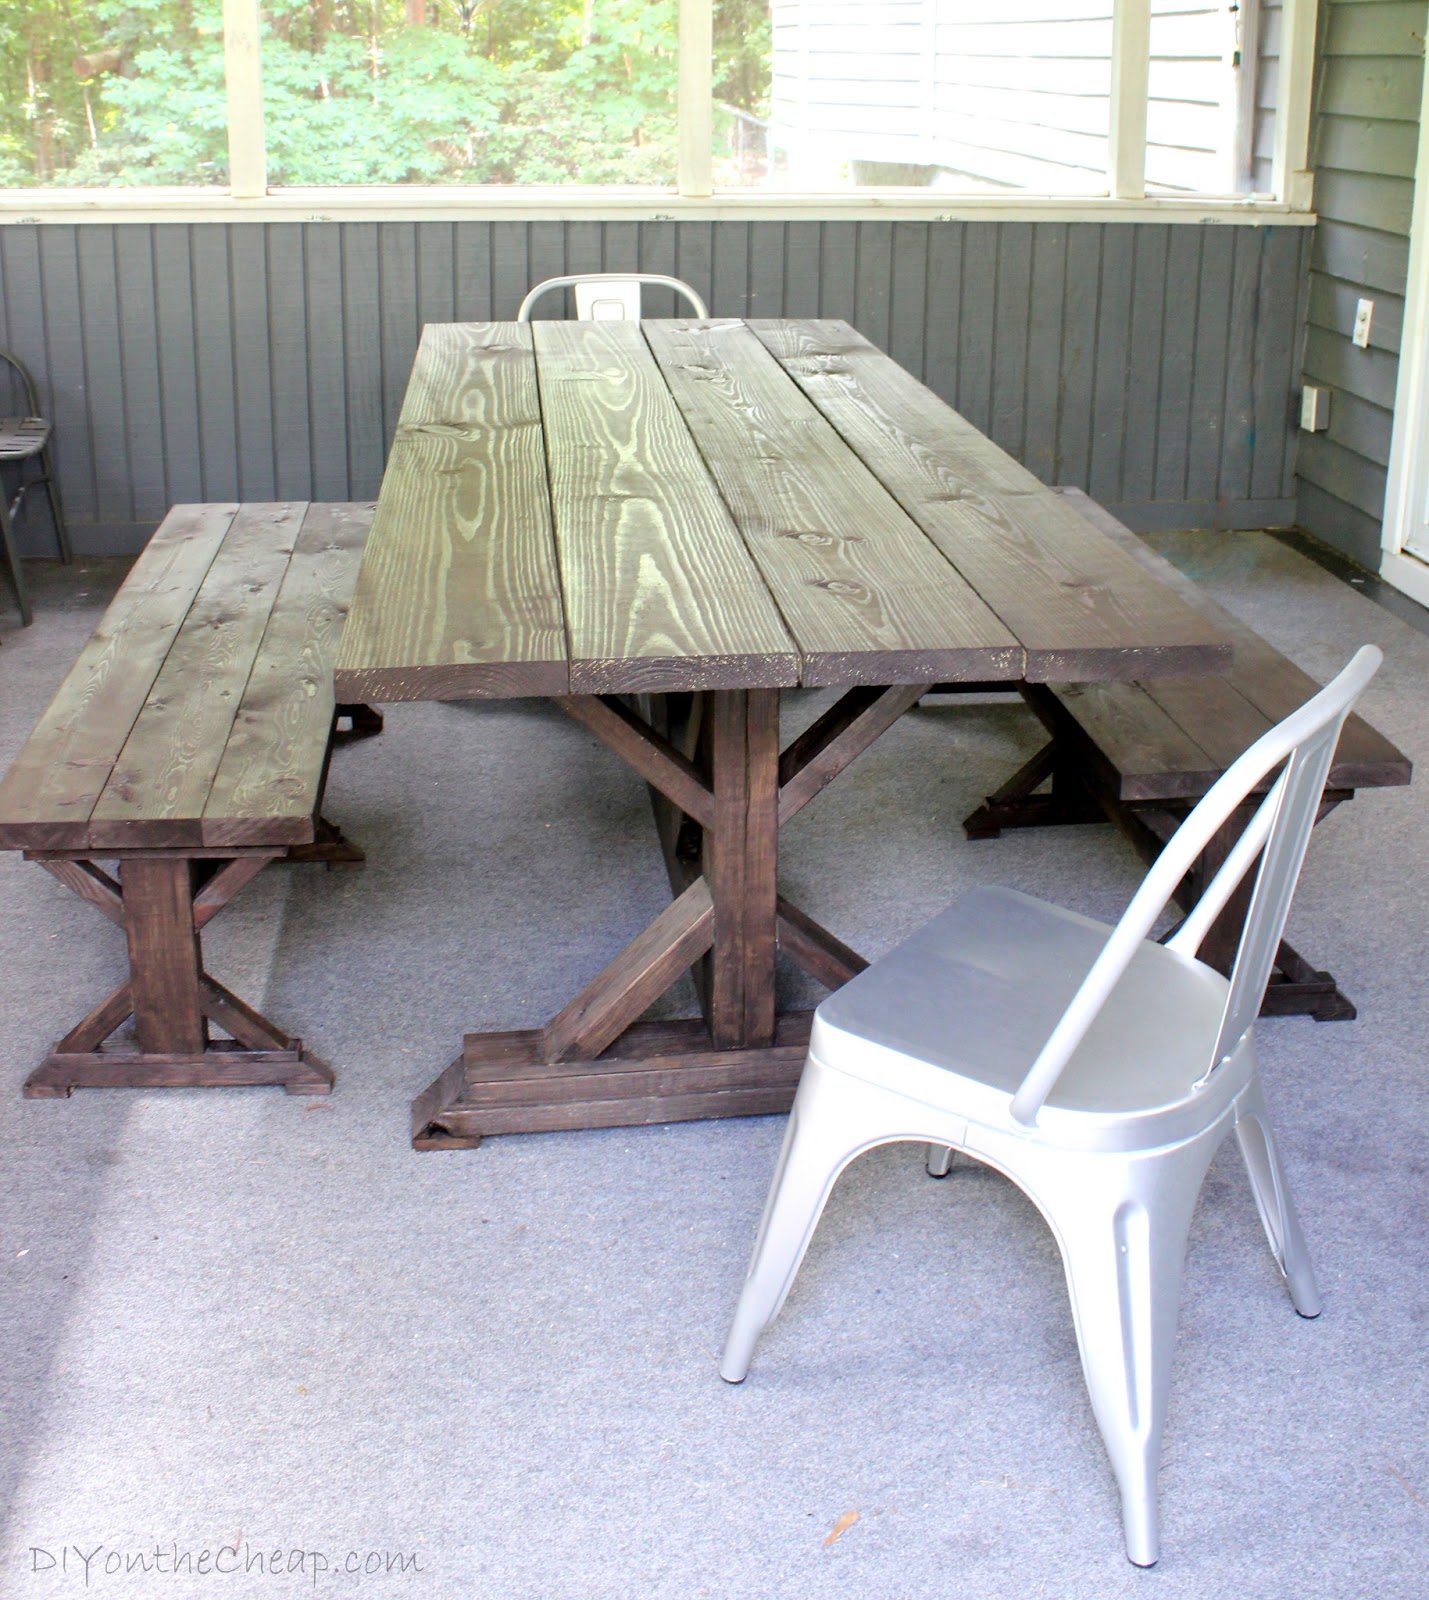 ... build plans if you'd like to build these too. (Here is the table and